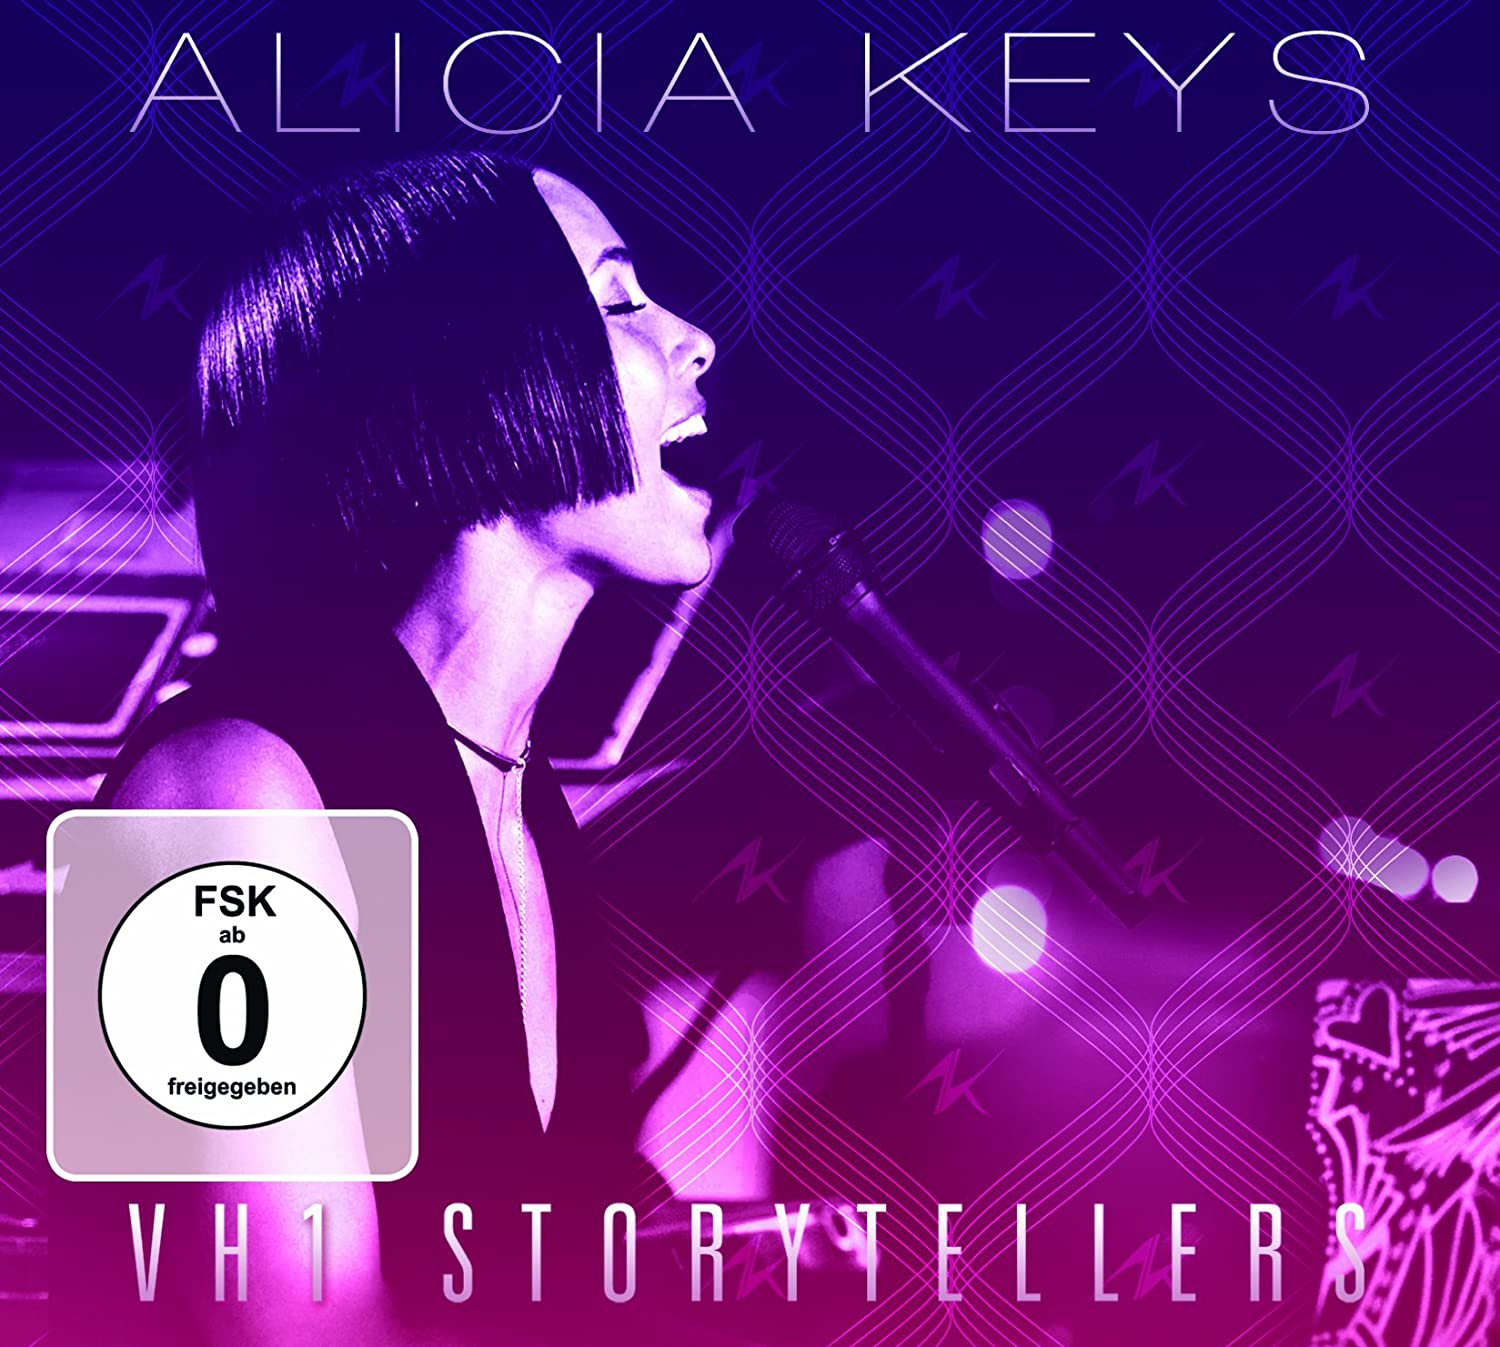 Storyteller Cafe Dvd Vh1 Storytellers Dvd/cd